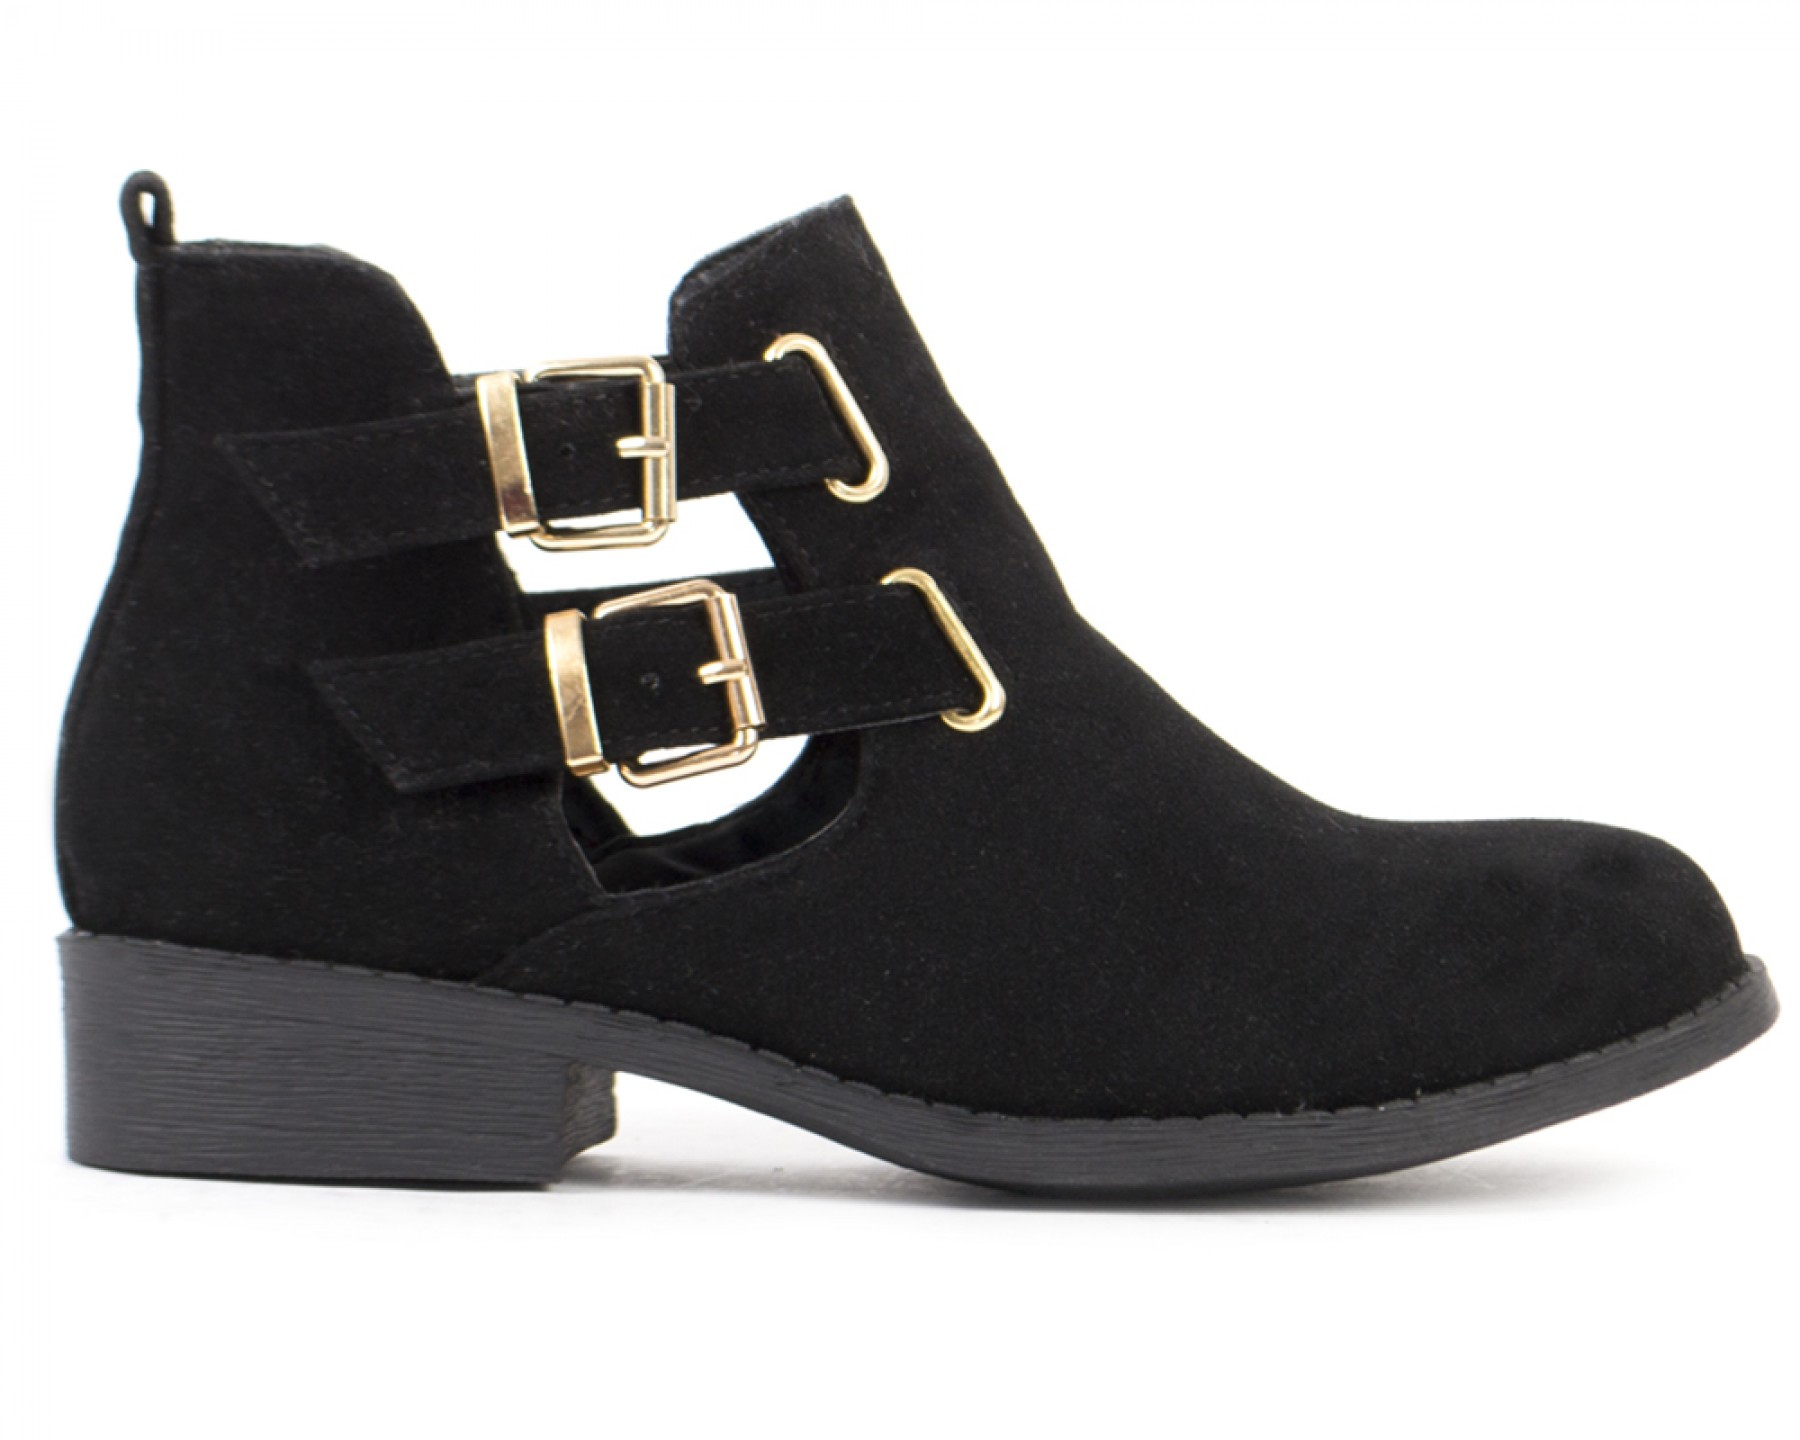 Suede Cut Out Buckled Ankle Boots In Black | Shelikes